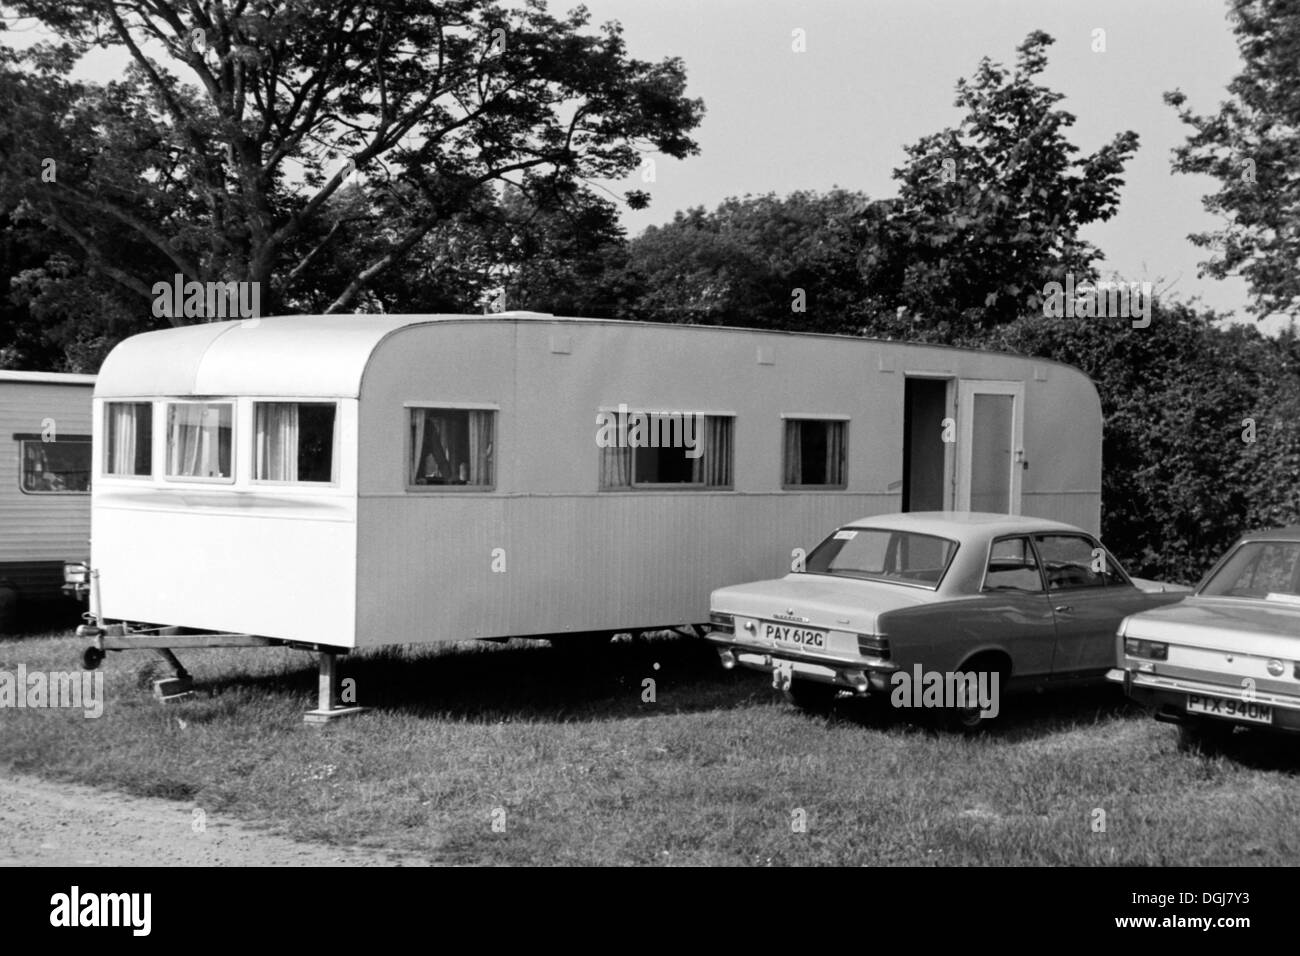 typical holidaymakers caravan accommodation on a site in wales during the 1970s uk Stock Photo